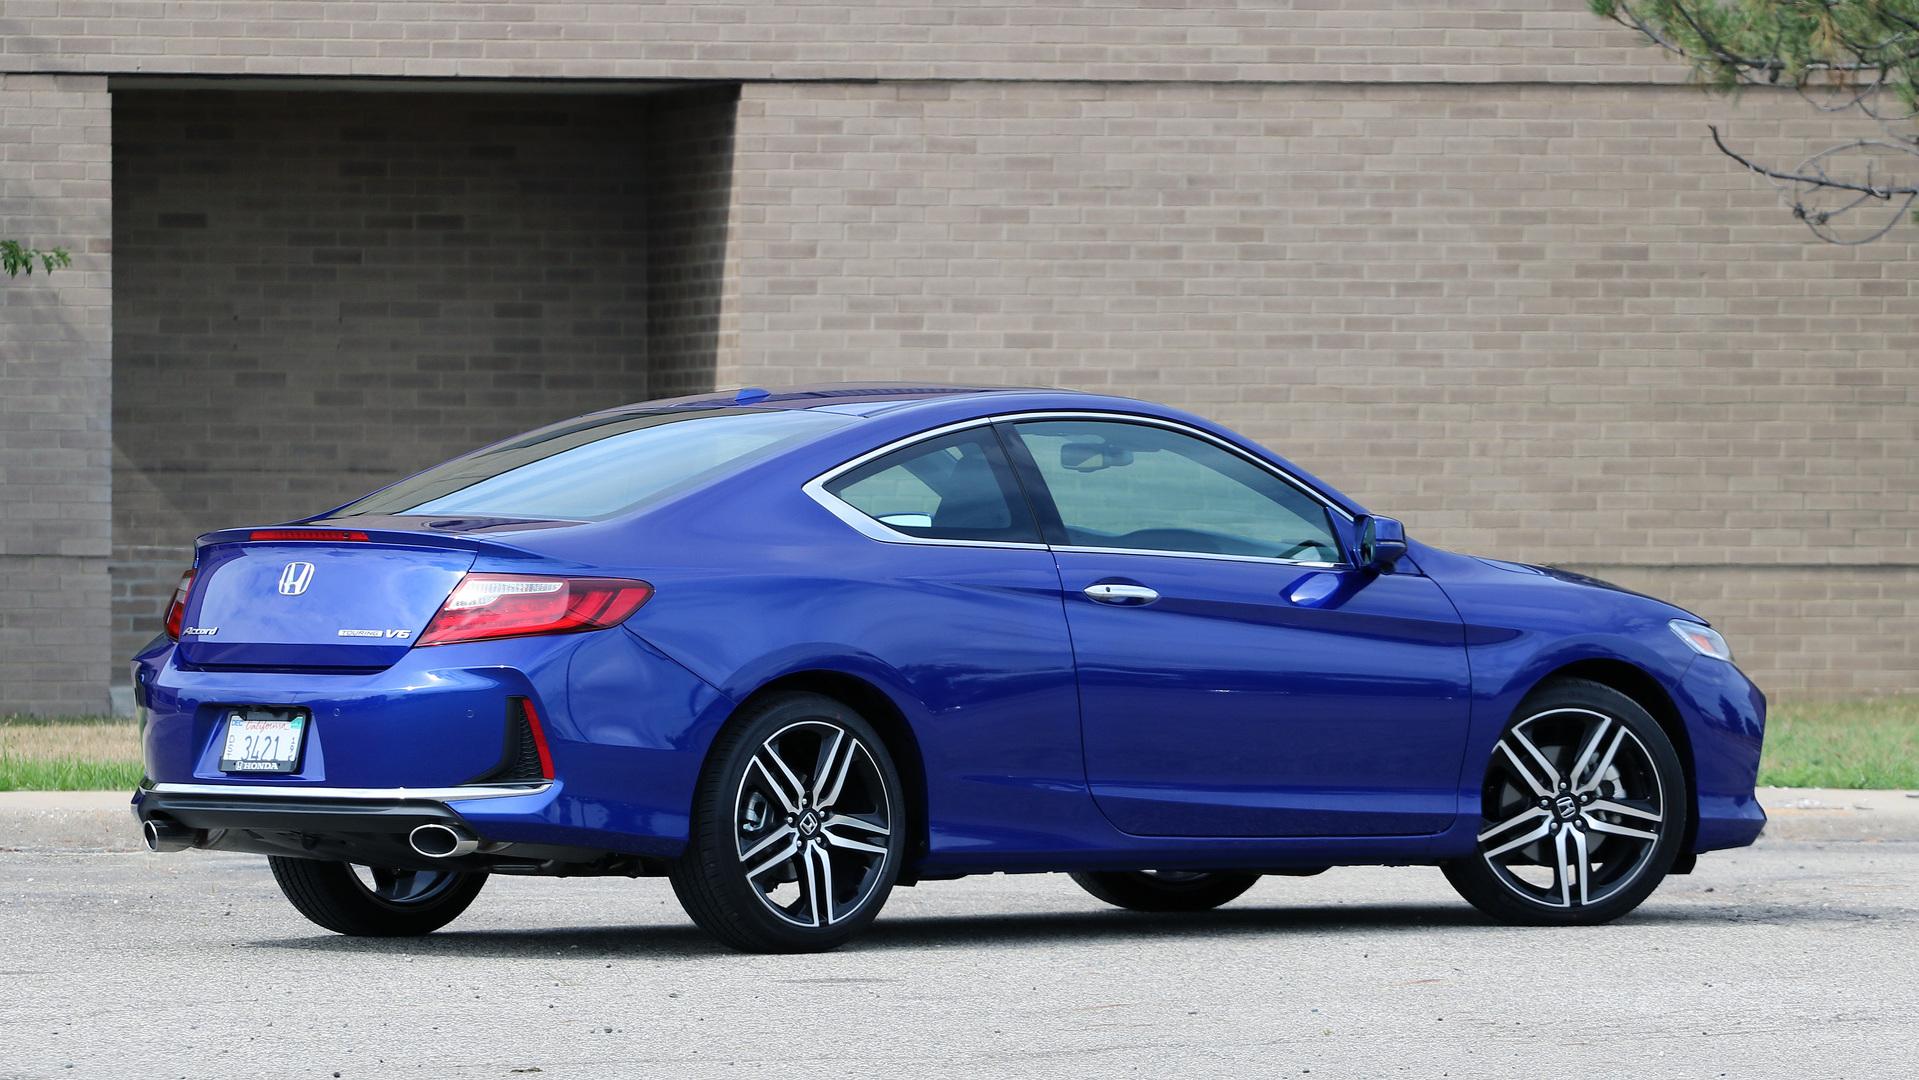 pictures information coupe accord specs honda wallpaper